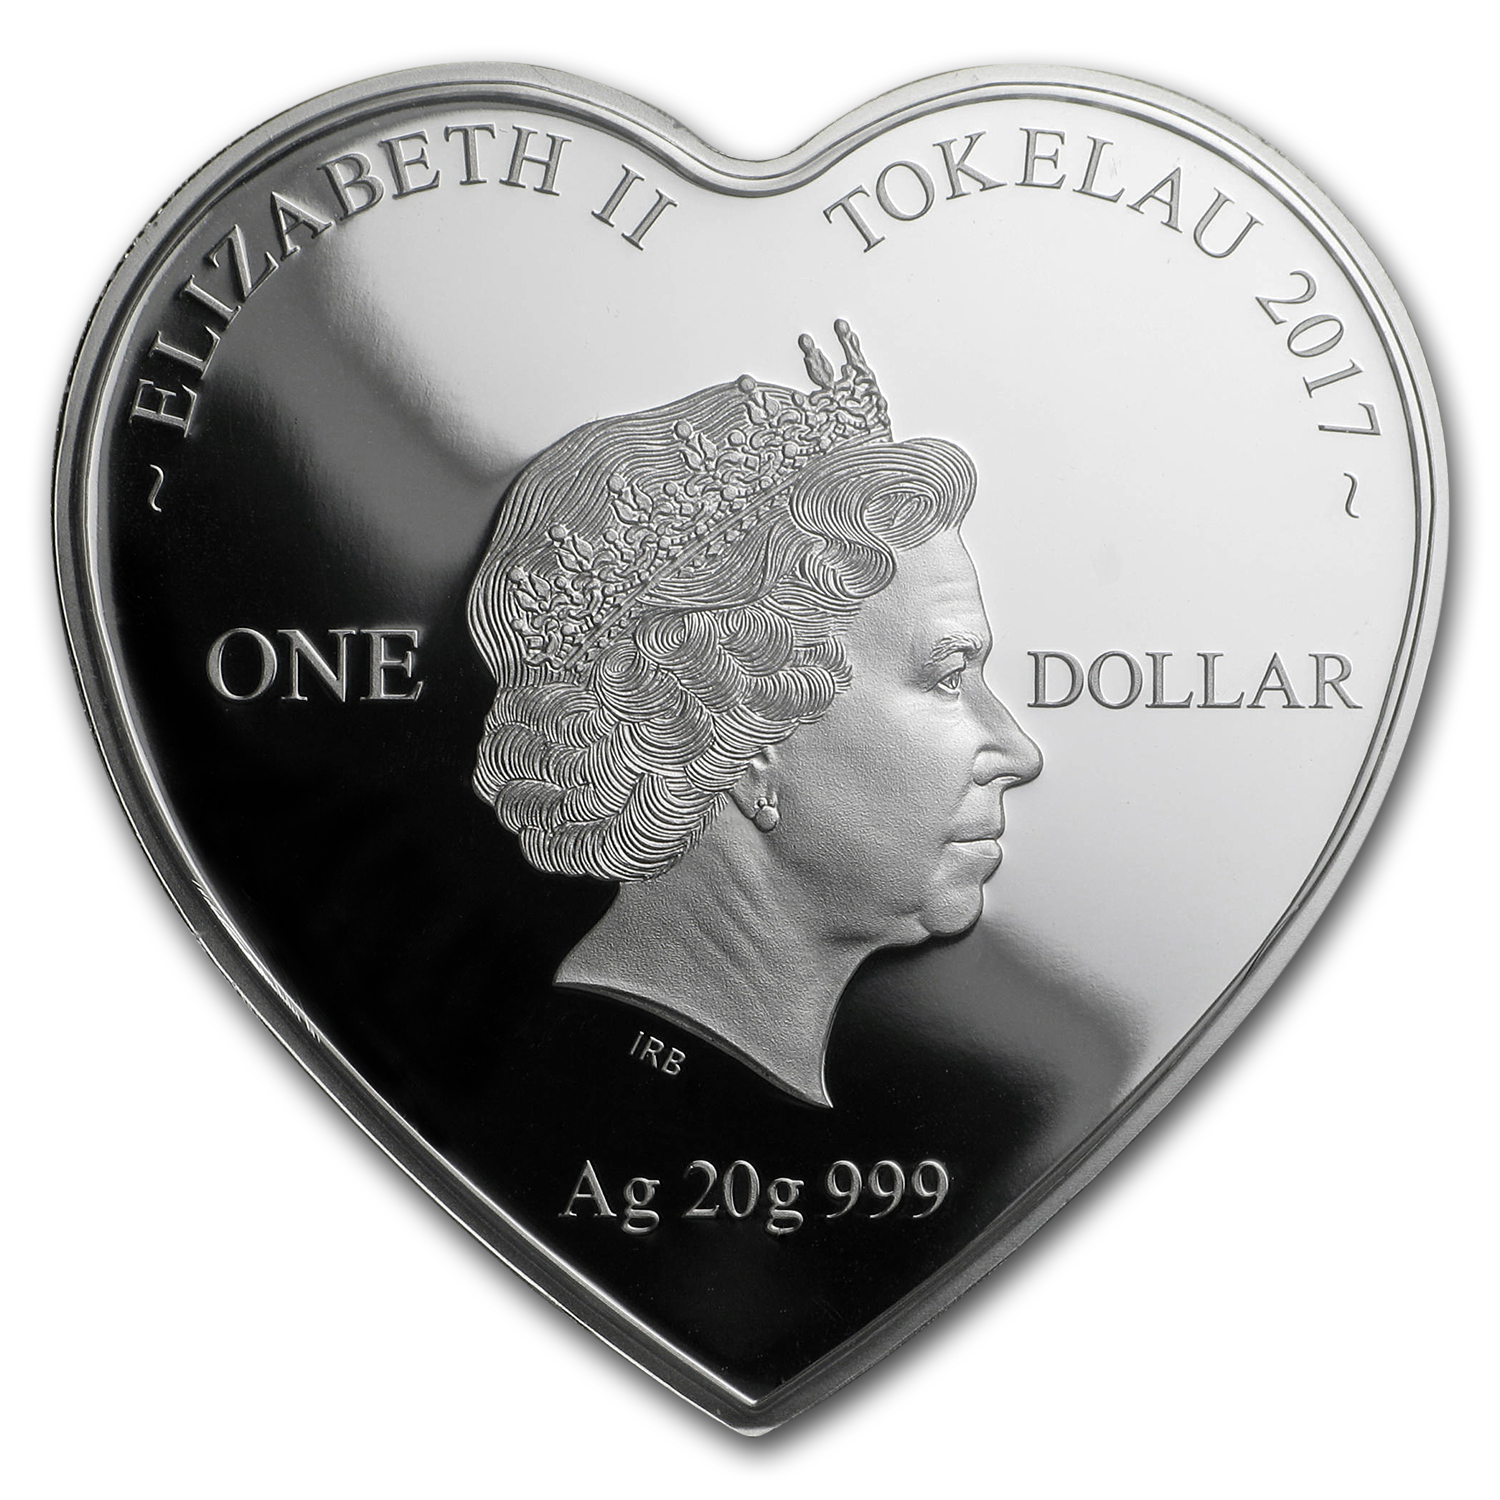 2017 Tokelau Proof Silver Together Forever Heart-Shaped Coin